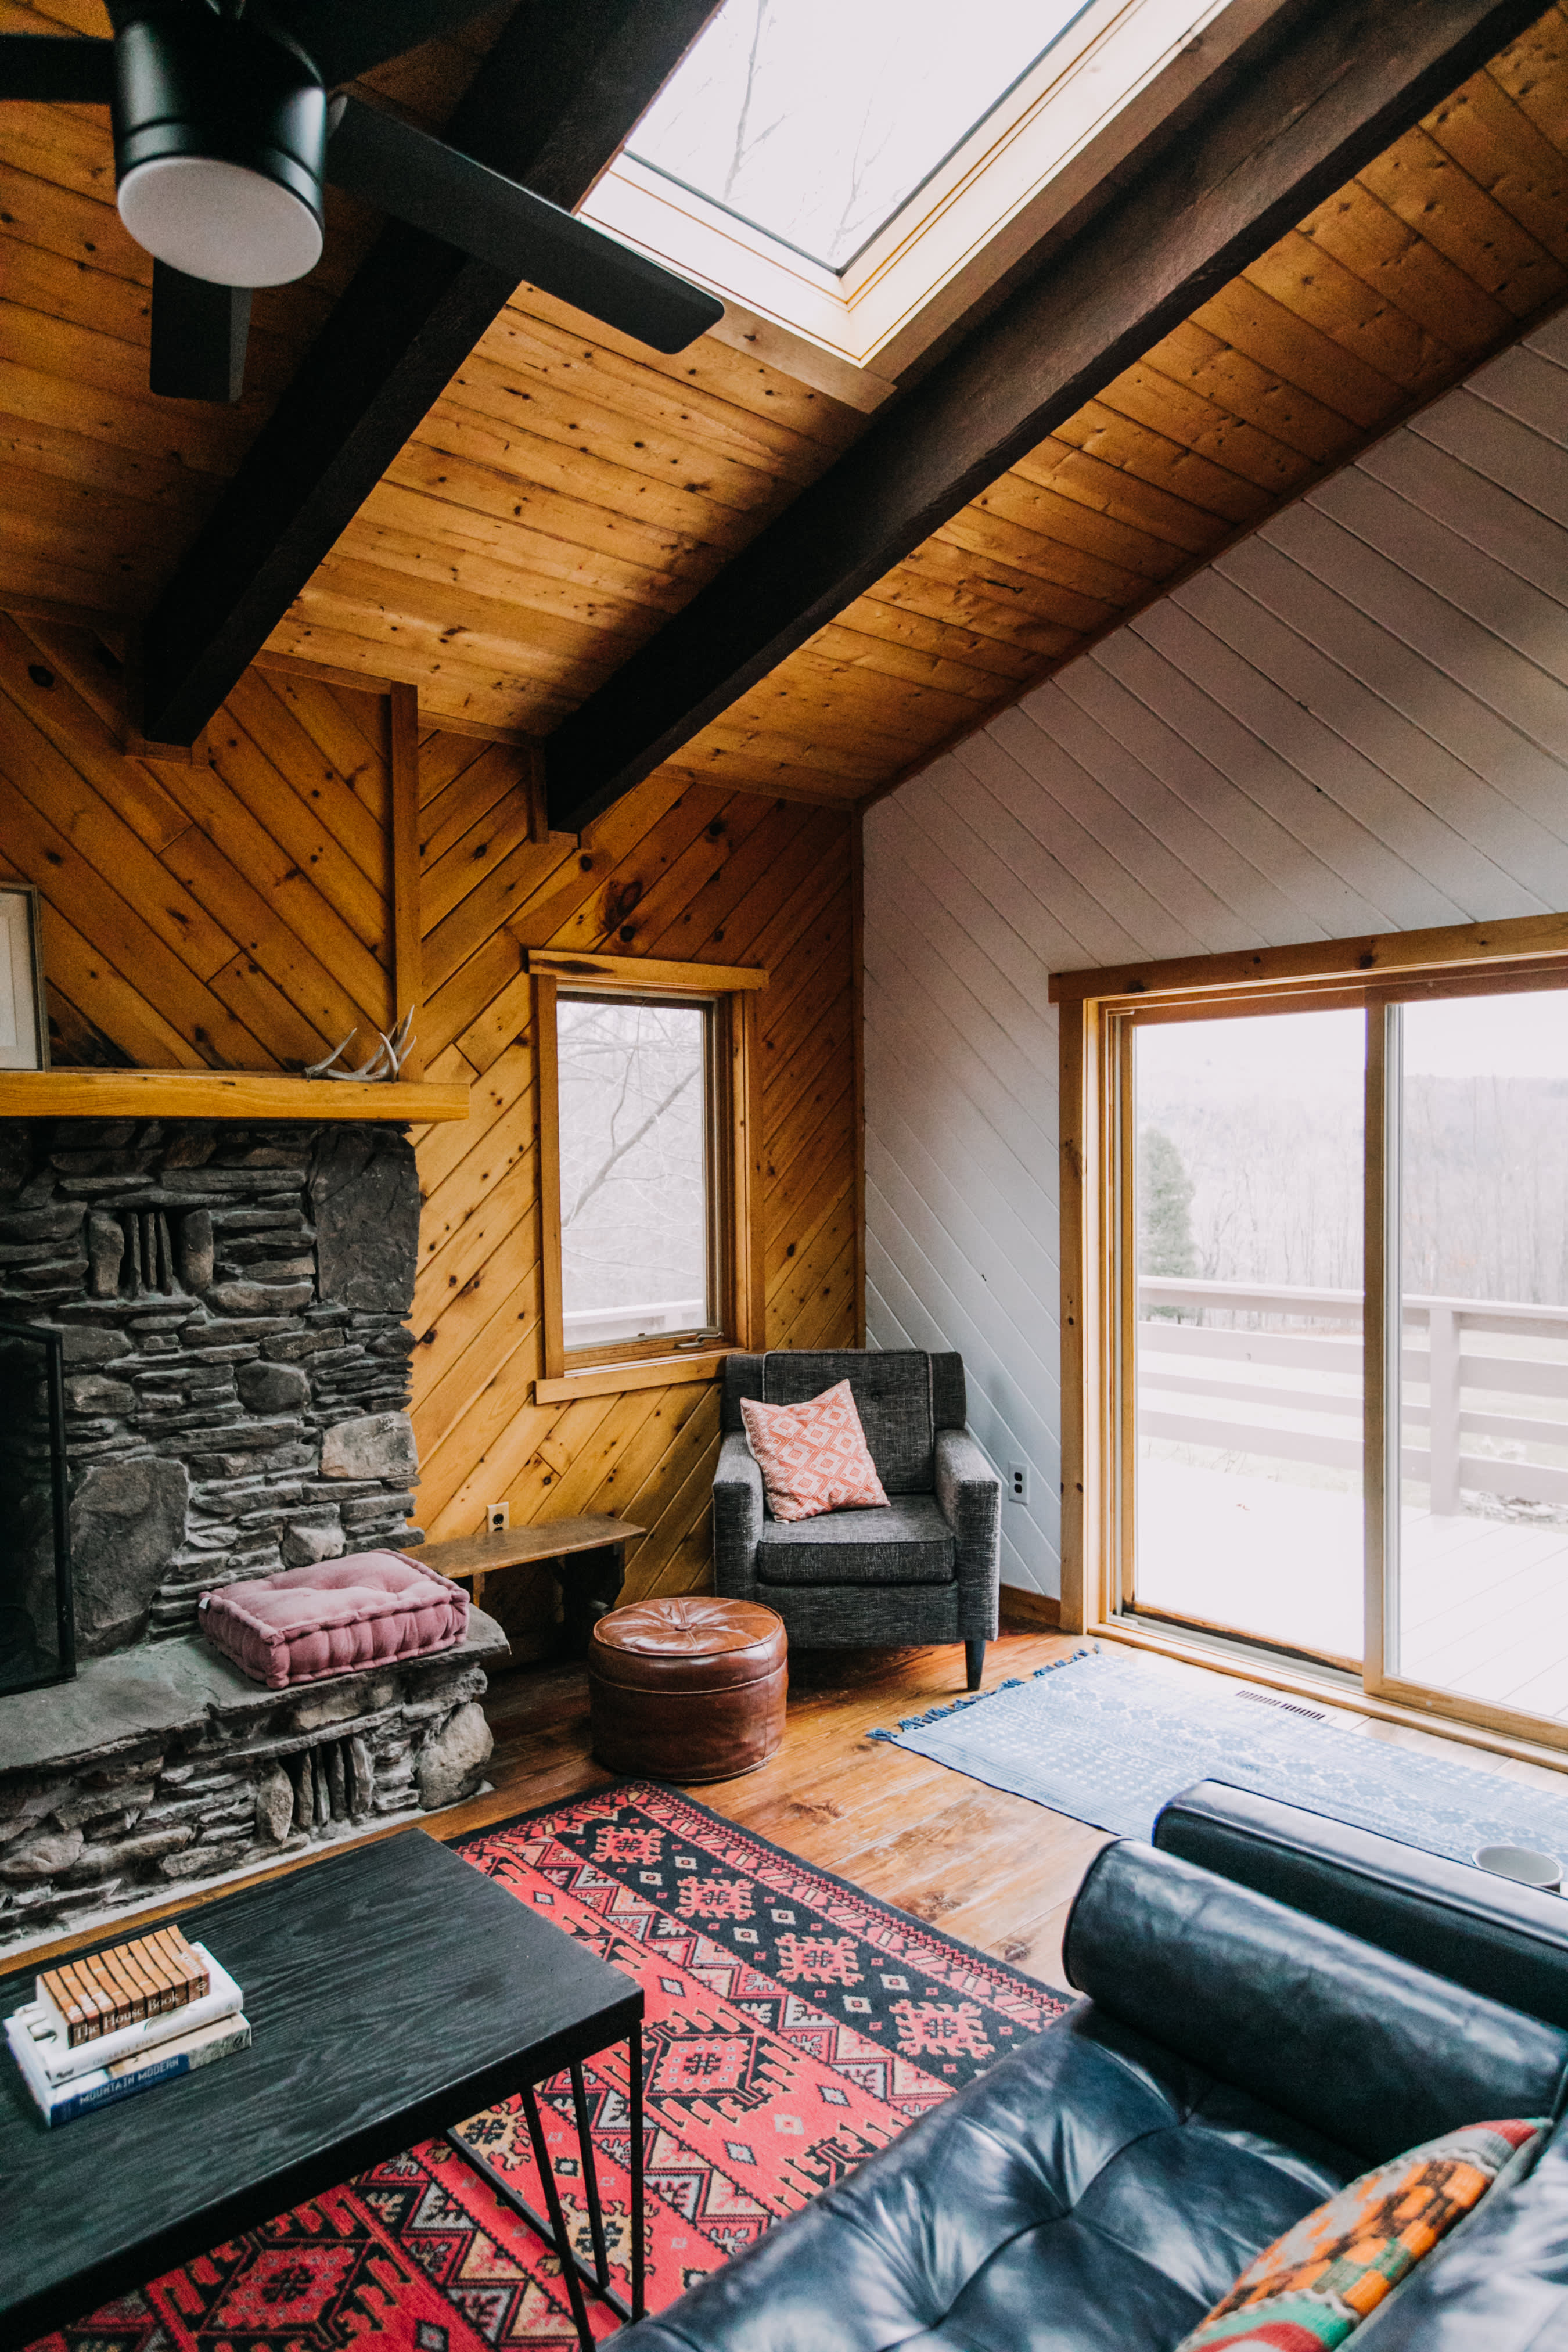 House Tour: A Cozy Mountain Cabin in the Catskills